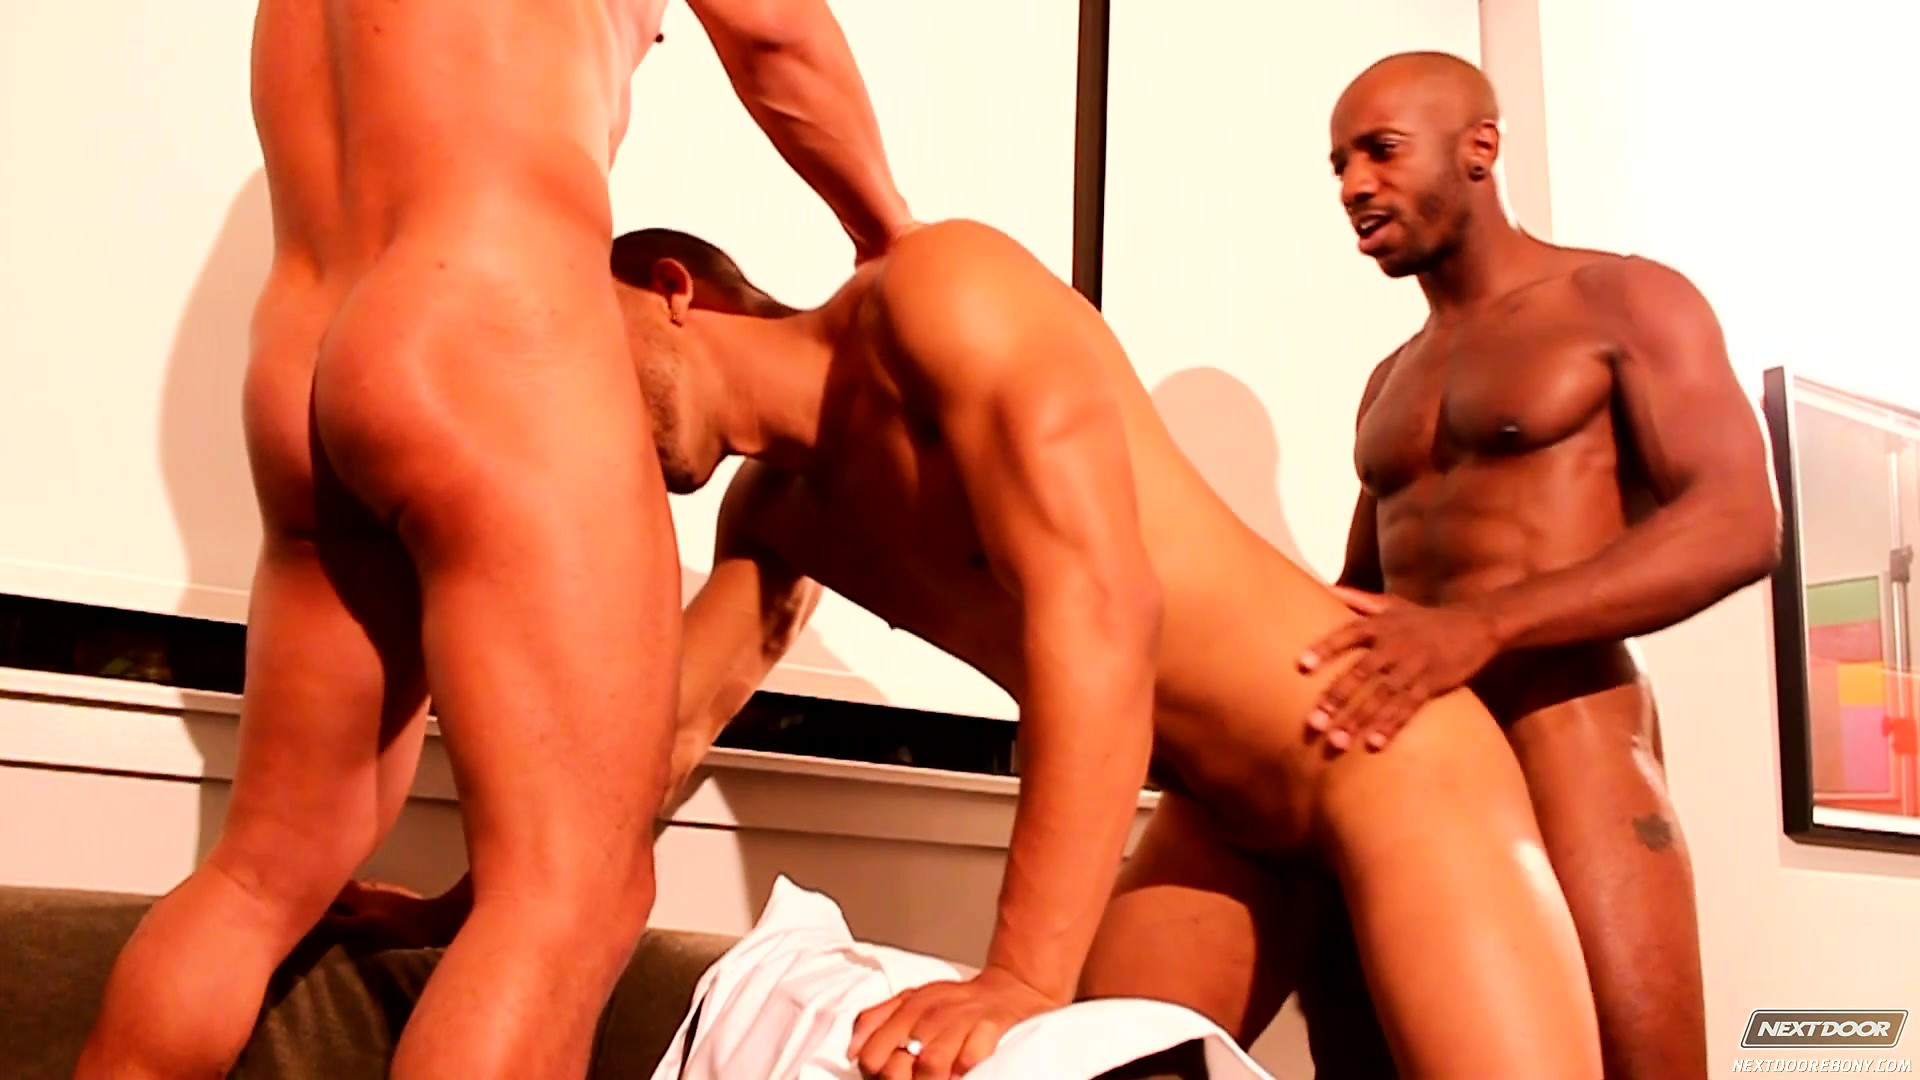 Porno Video of Muscled Ebony Dudes Get So Excited They Fuck Their Gay Buddy Too Rough